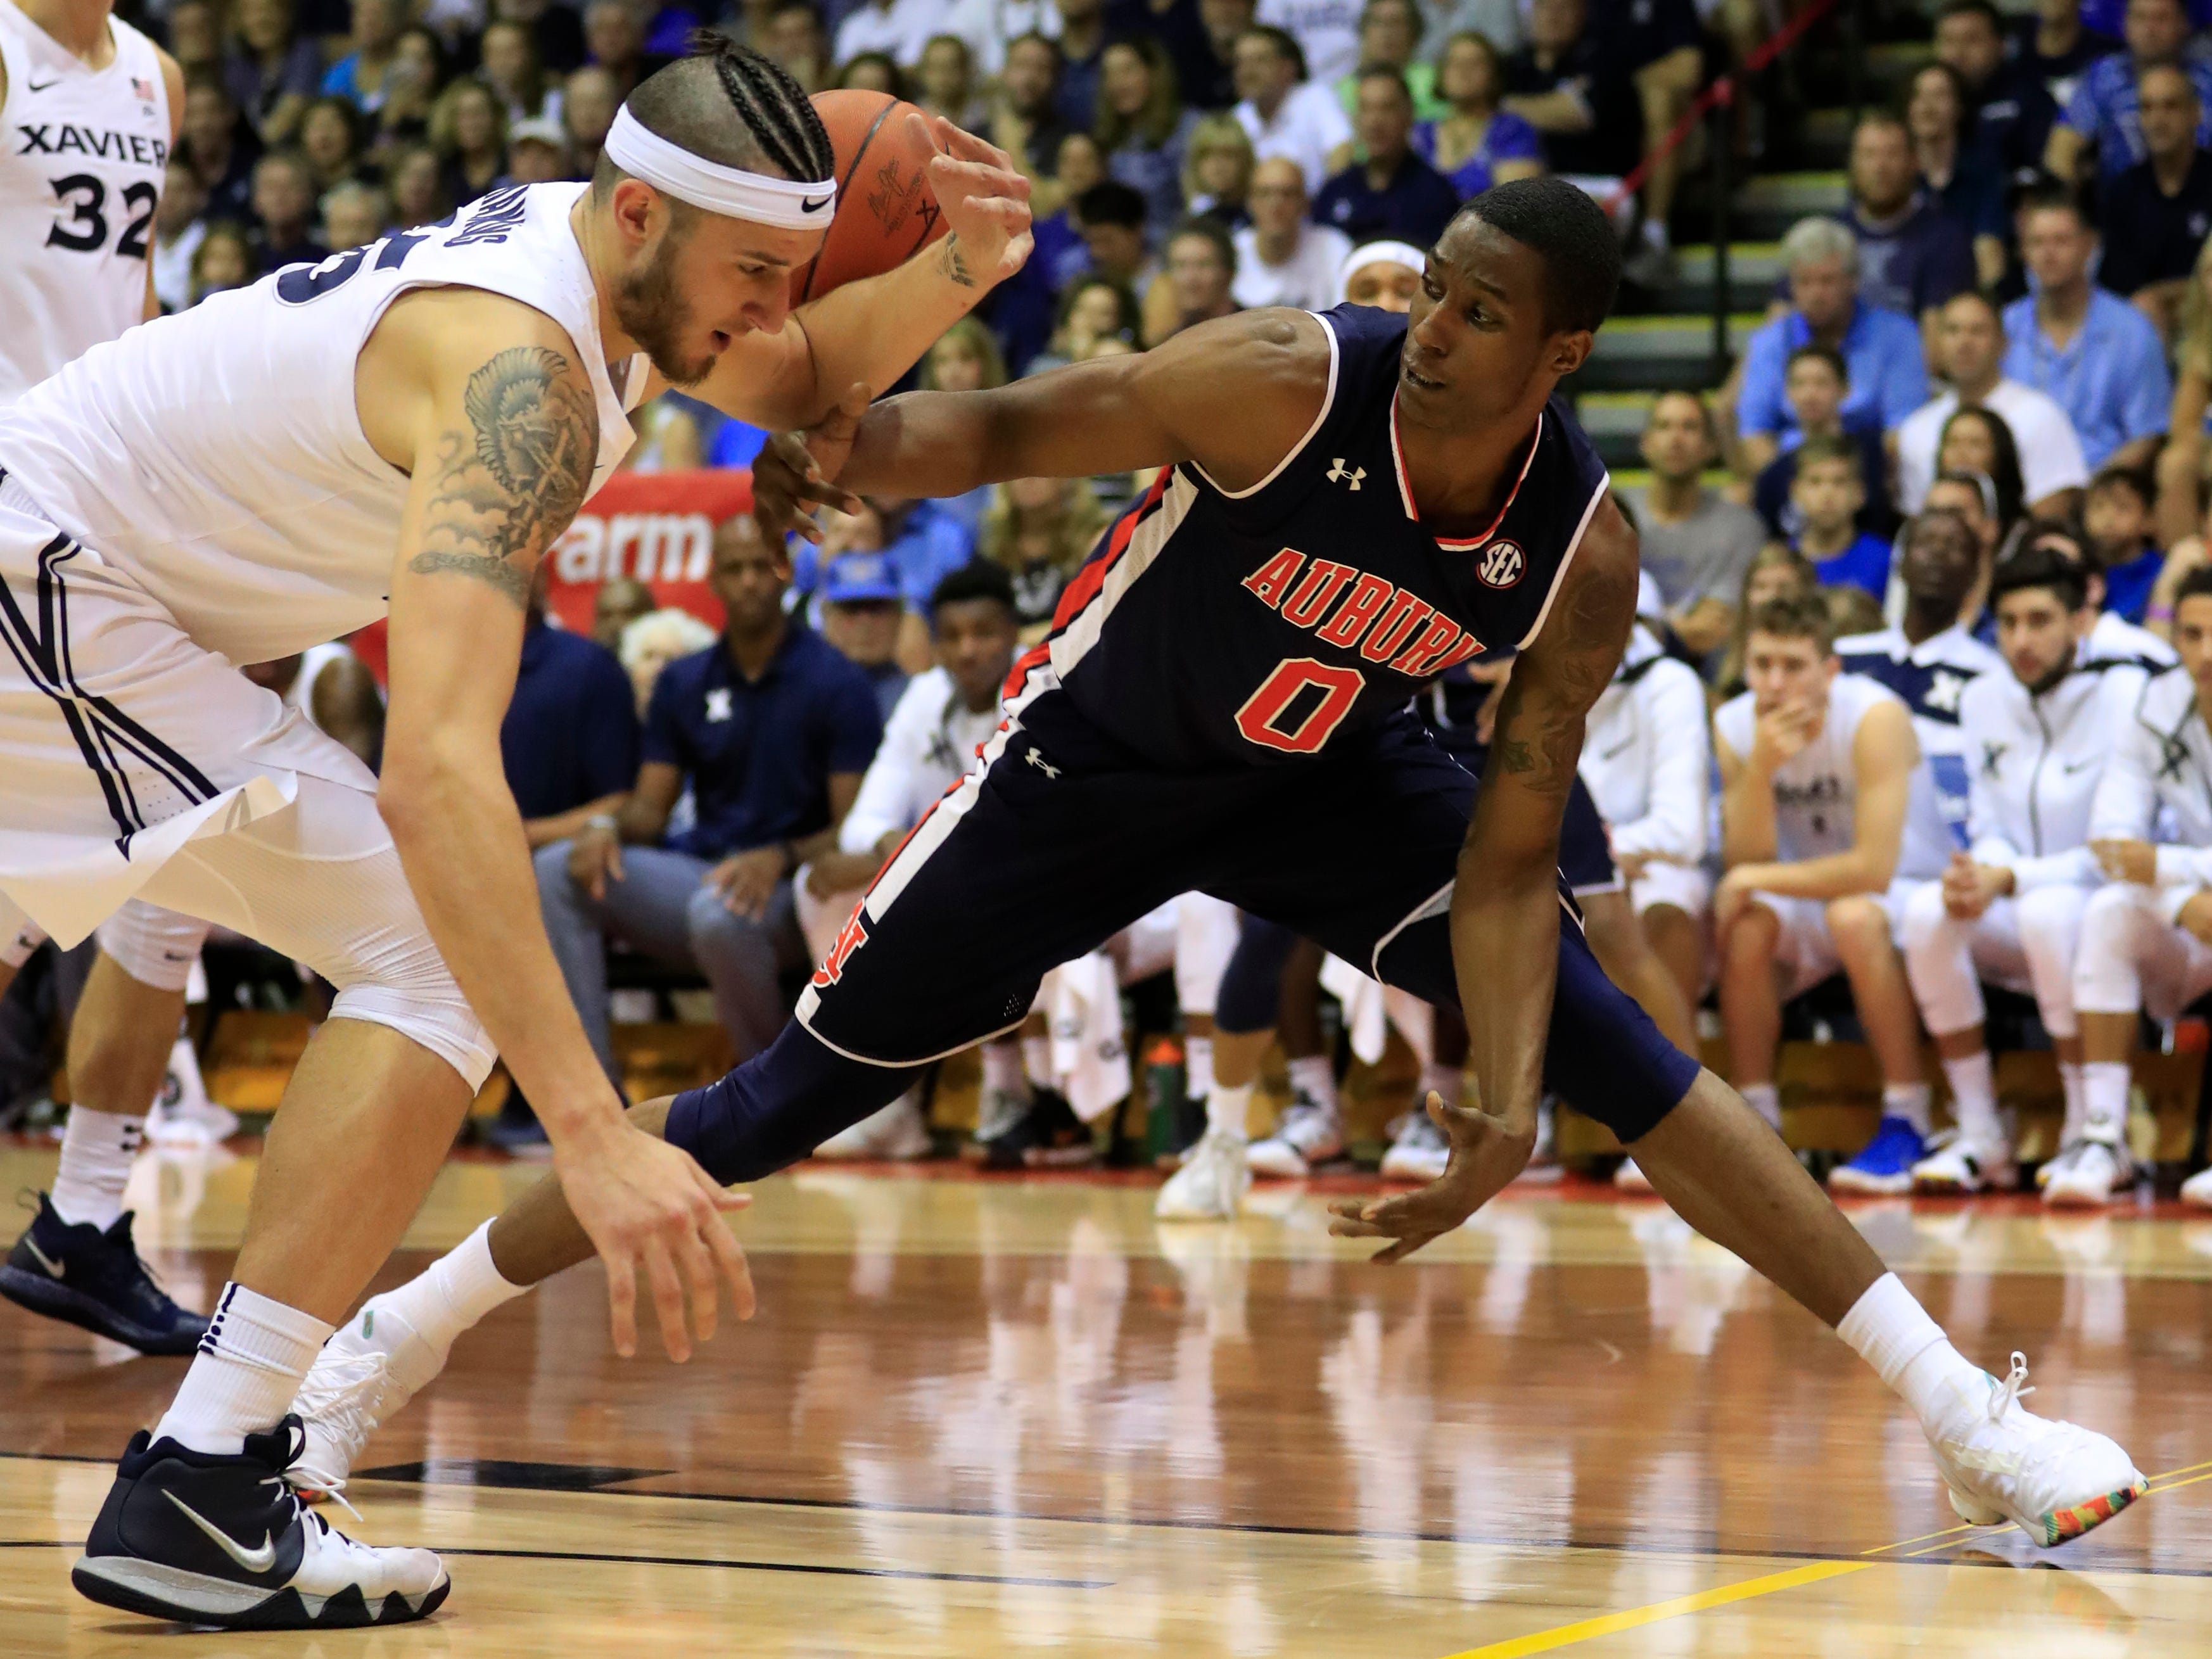 Xavier forward Zach Hankins (35) fights for a loose ball against Auburn forward Horace Spencer (0) during the first half of an NCAA college basketball game at the Maui Invitational, Monday, Nov. 19, 2018, in Lahaina, Hawaii.